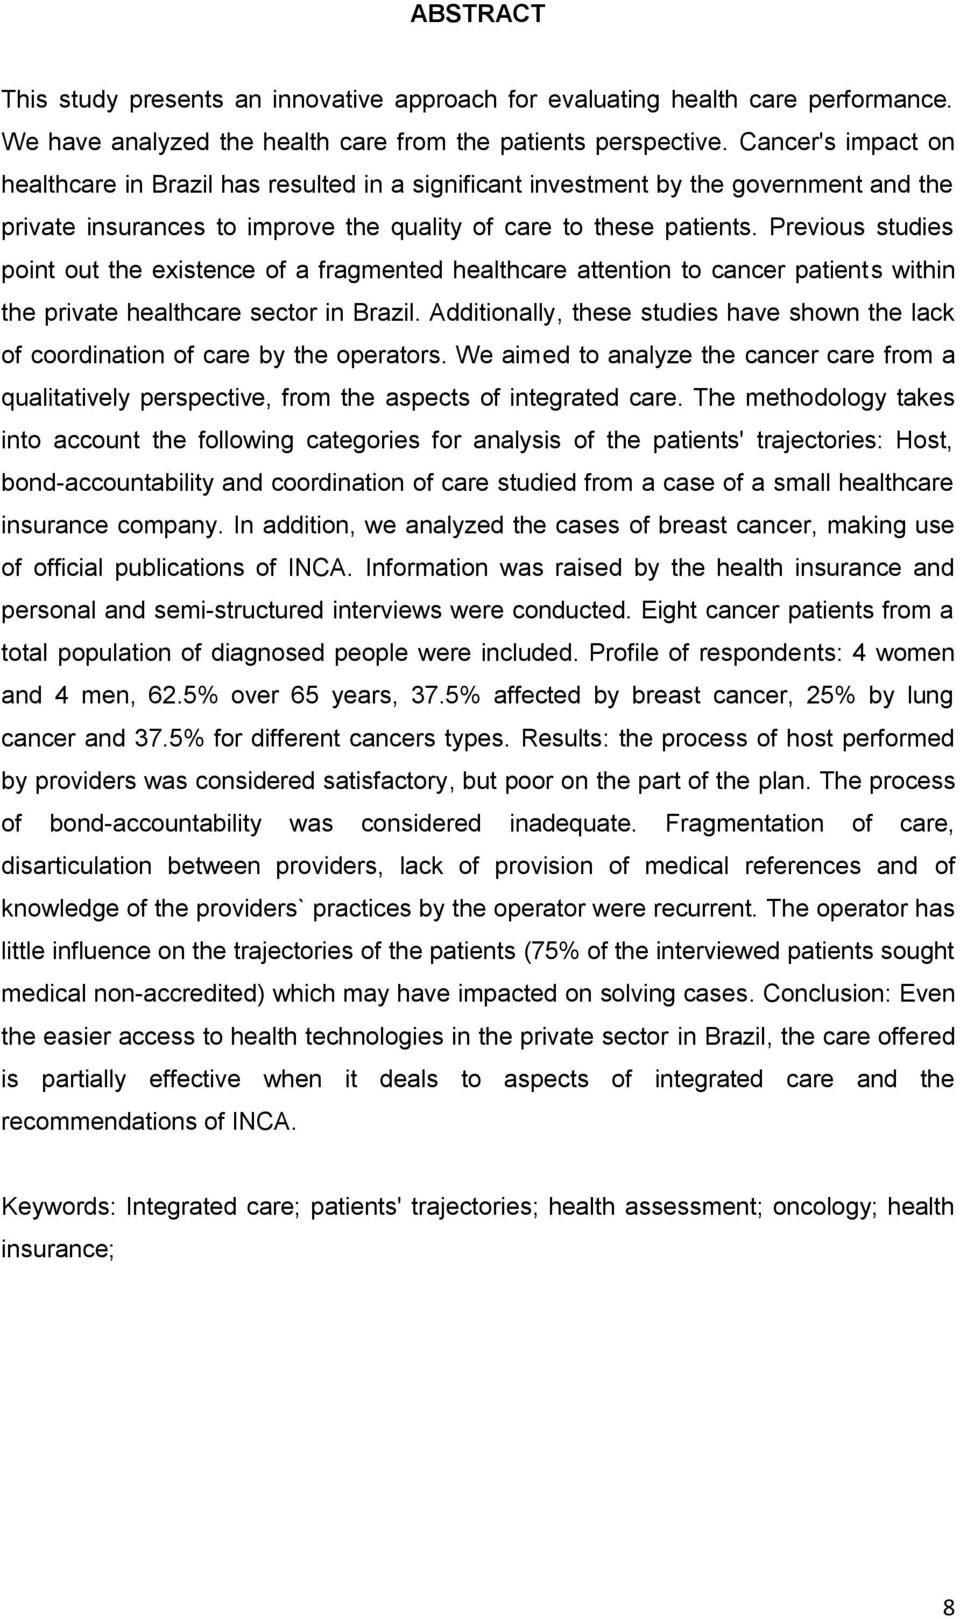 Previous studies point out the existence of a fragmented healthcare attention to cancer patients within the private healthcare sector in Brazil.